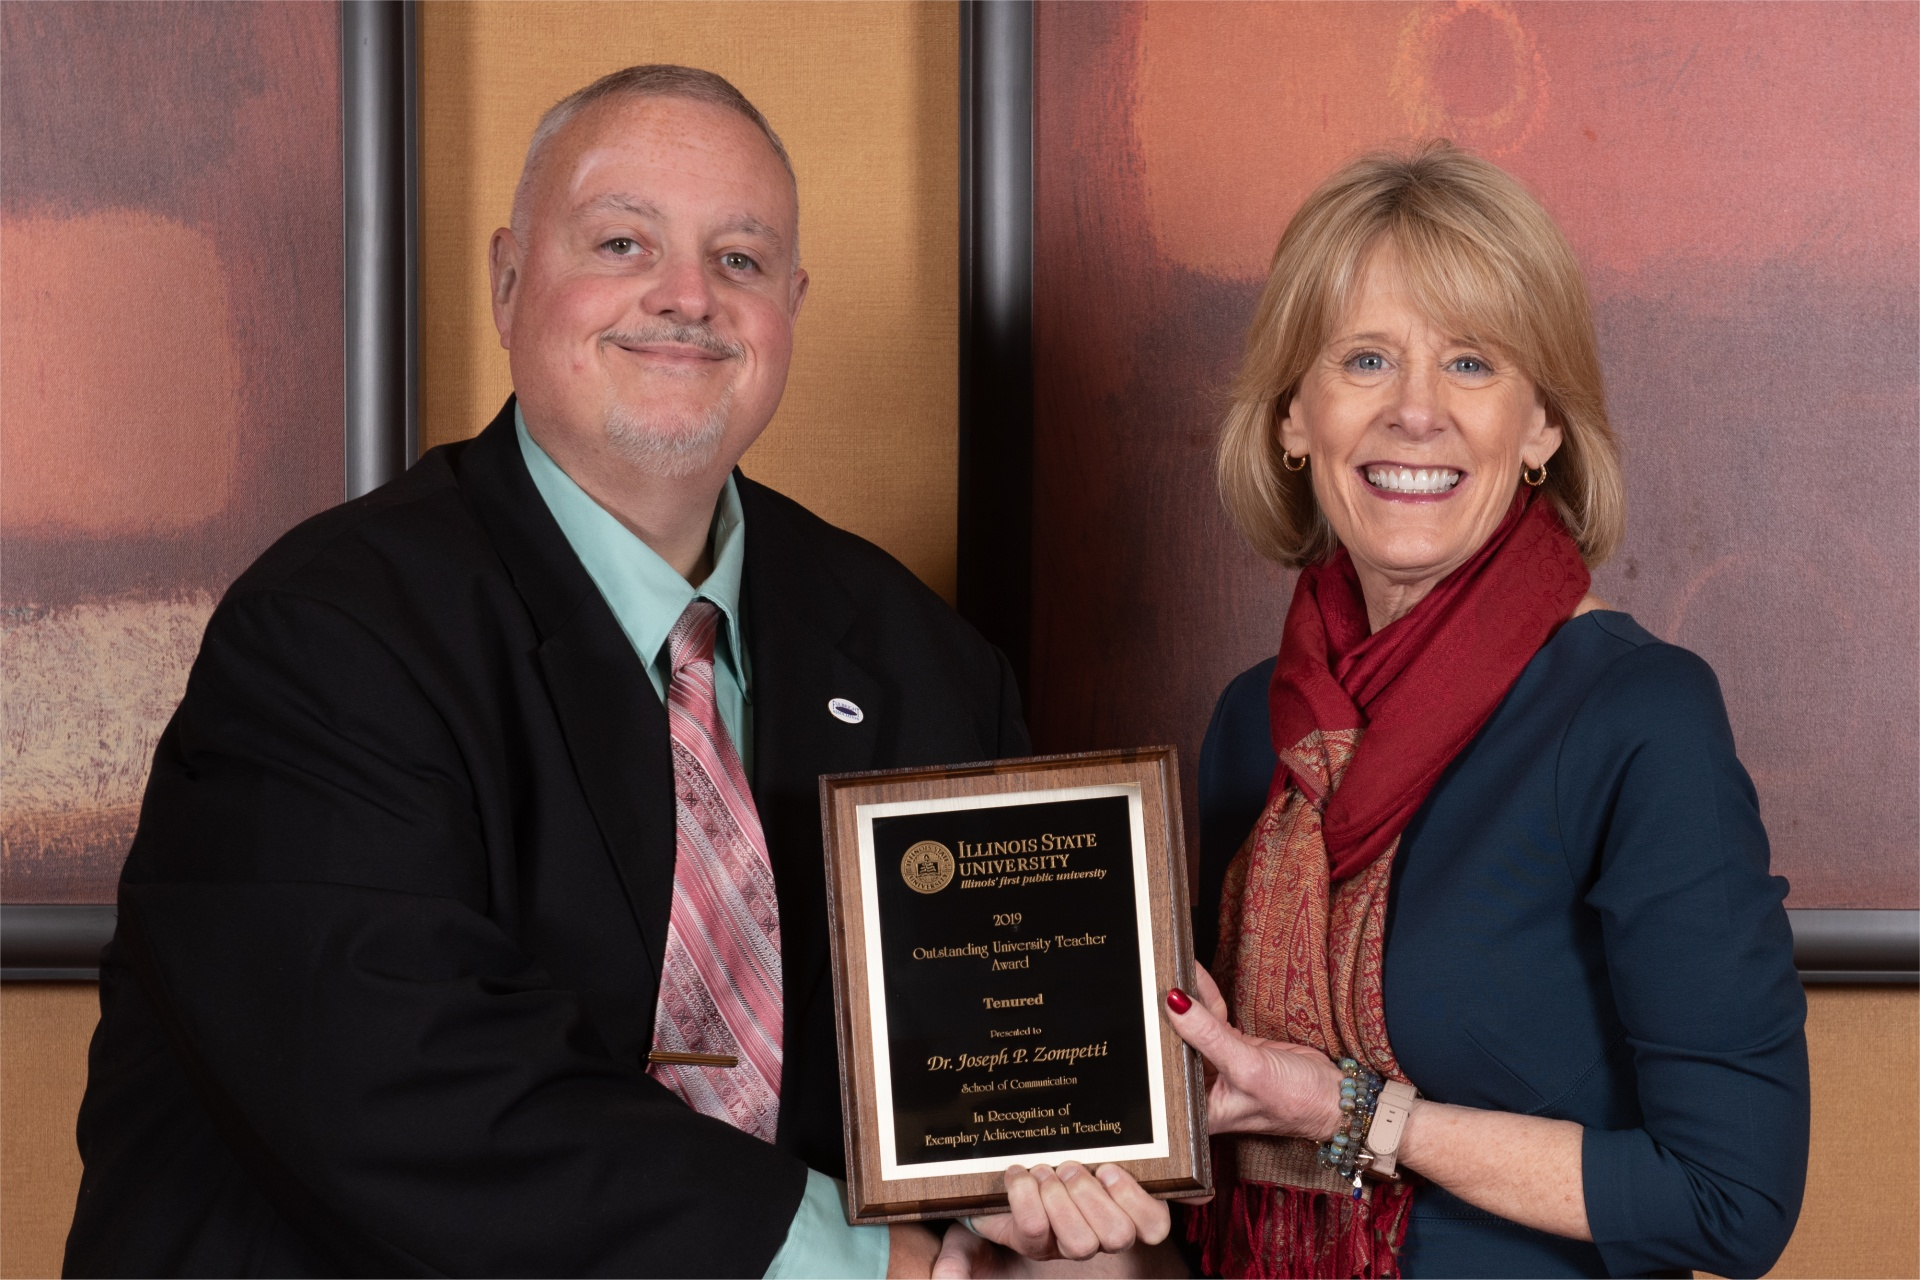 Provost Dr. Jan Murphy presents an Outstanding University Teaching Award to Dr. Joseph Zompetti, School of Communication, who was one of three faculty members so honored at the recent Teaching & Learning Symposium.